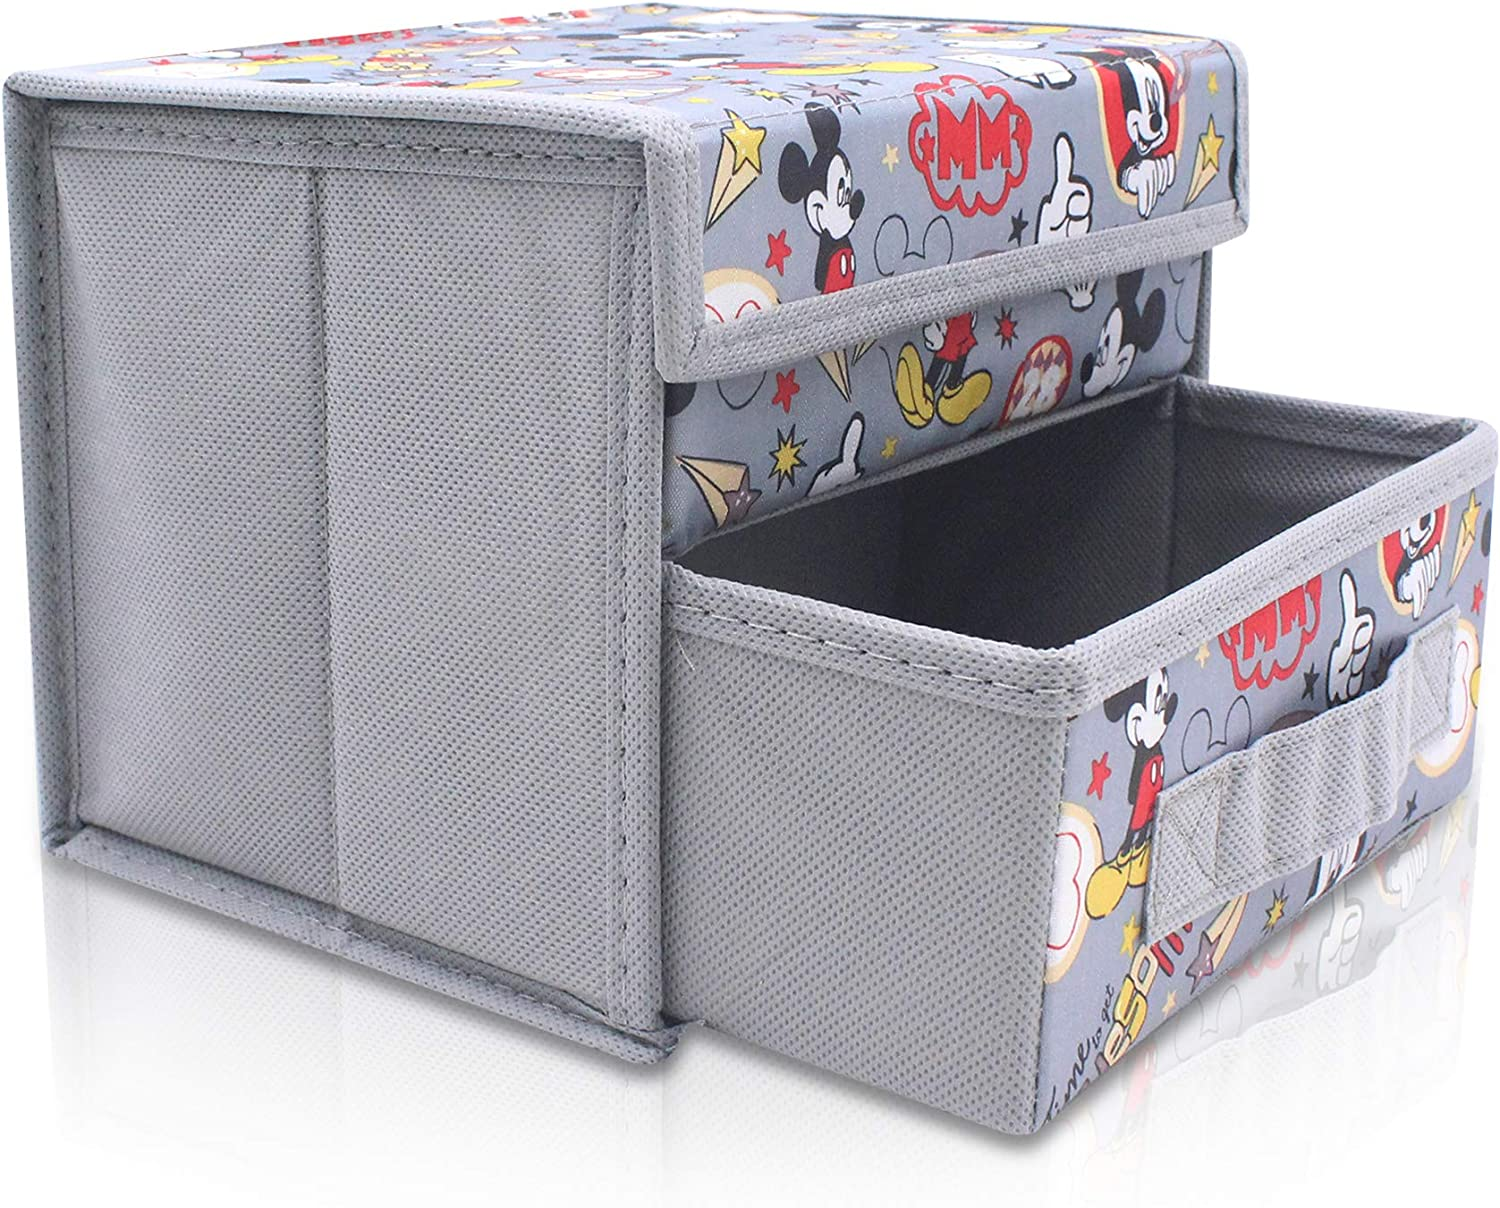 Finex Mickey Mouse Gray Grey Foldable Storage Organizer Box for Desk - with Removable Drawer Collapsible